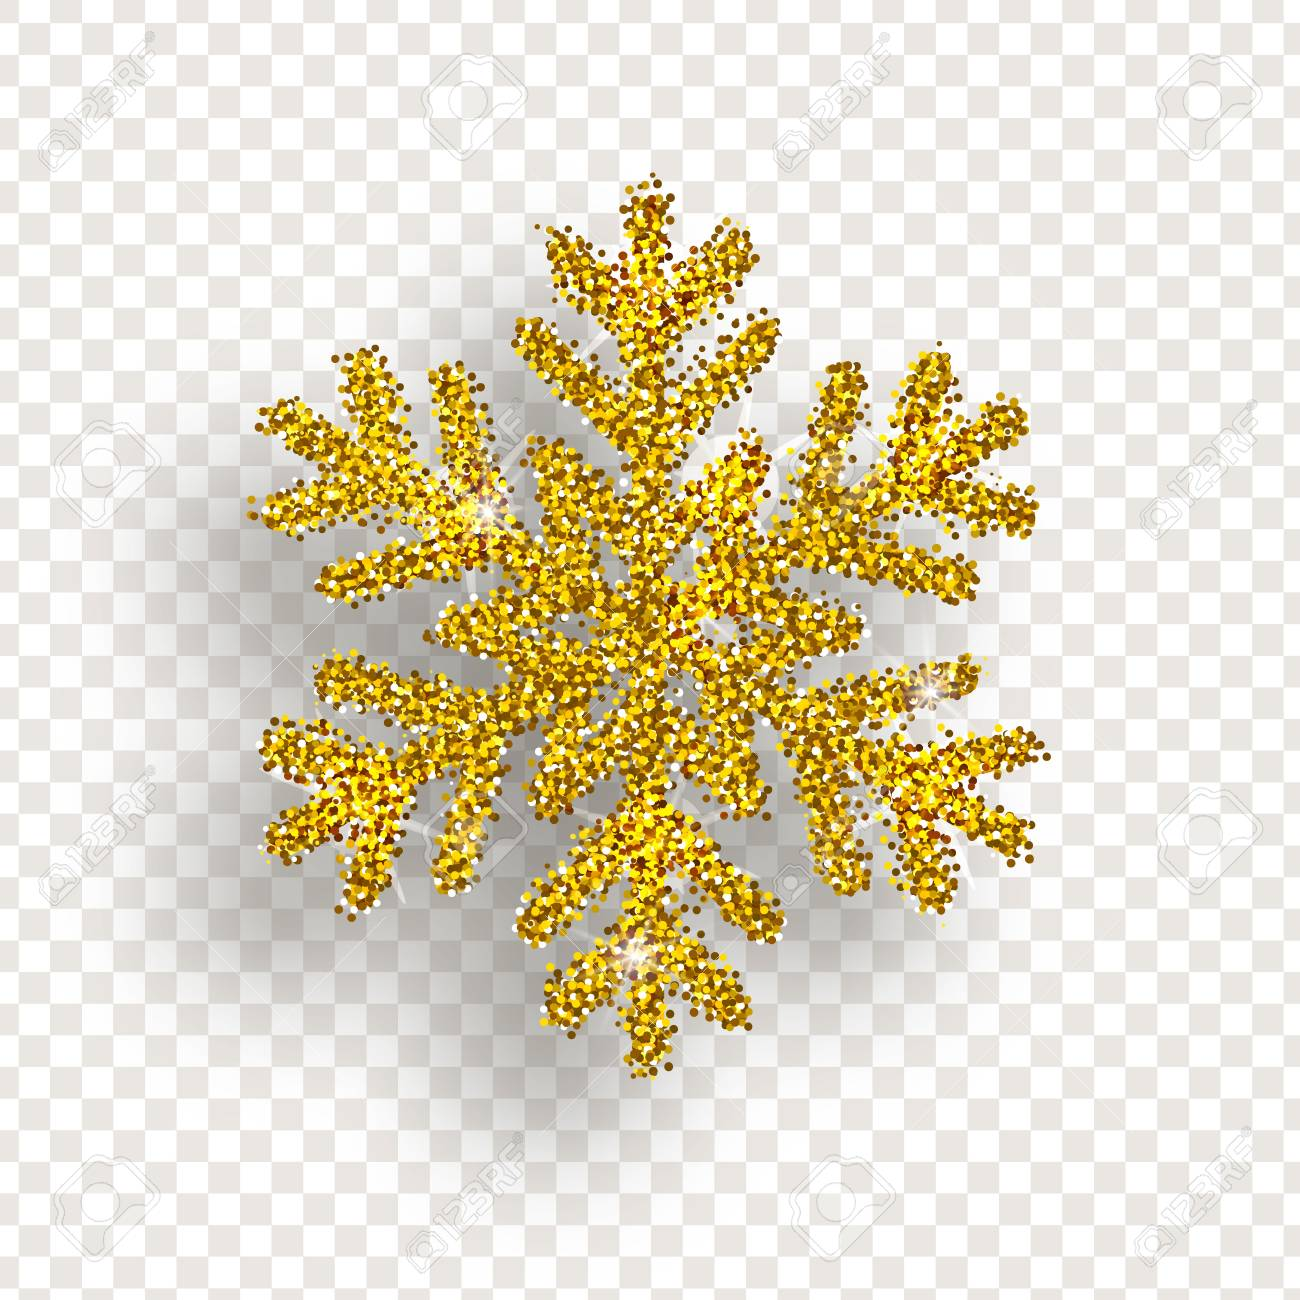 Golden snowflake with bright glitter on transparent background